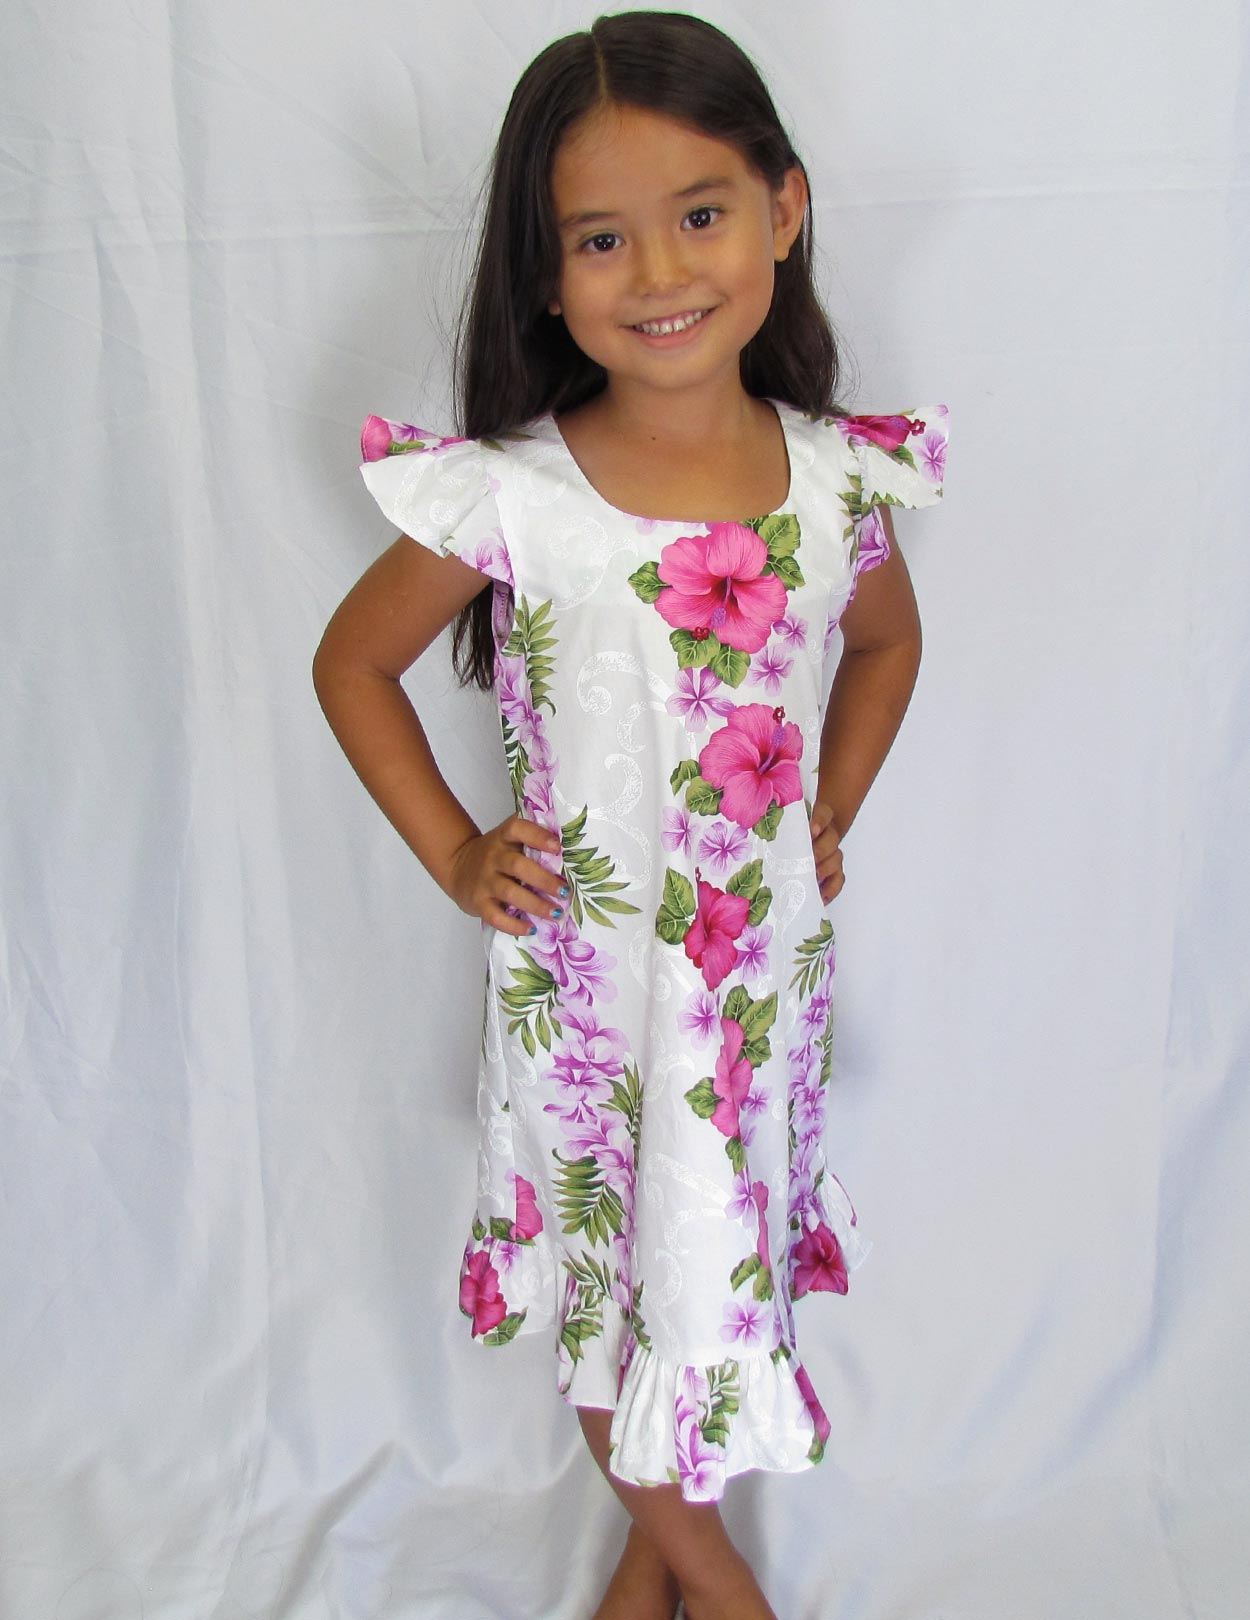 Girl Hawaiian Dress Big Island White Pink Shaka Time